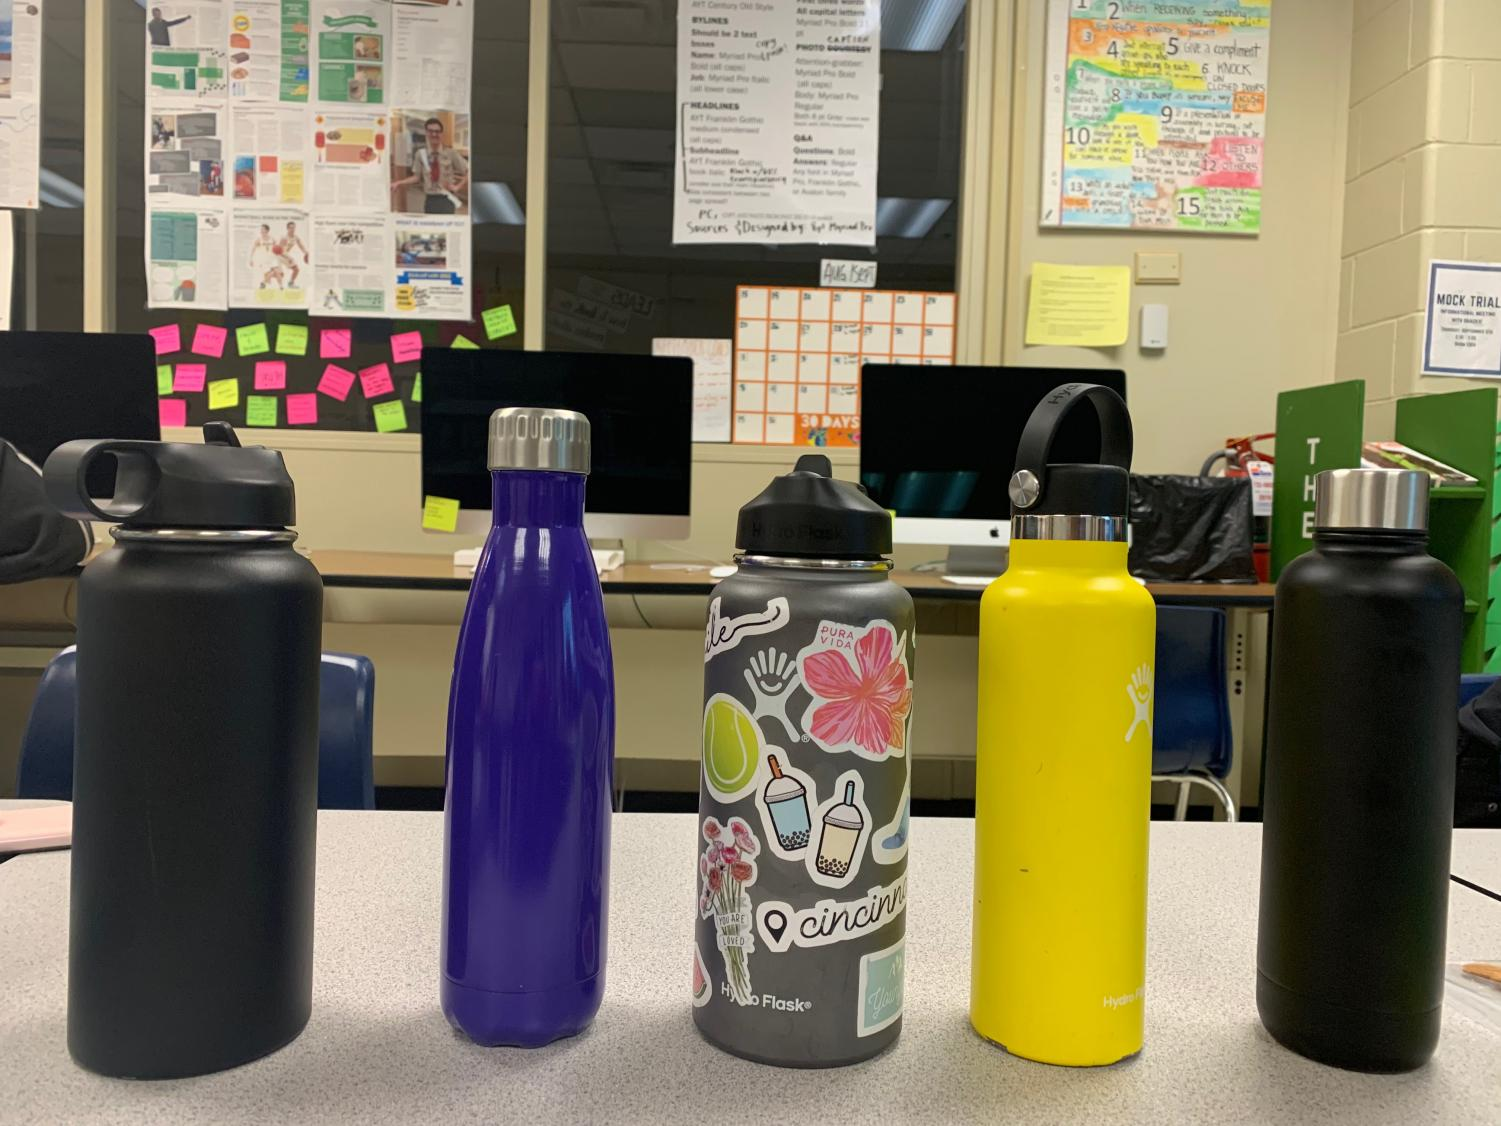 SEA OF METAL. Hydroflasks are a staple among students in most classes. They vary in color and shape, allowing the user to buy one that matches their aesthetic. The abundance of these water bottles is only one common trend observed today in the sustainability movement.